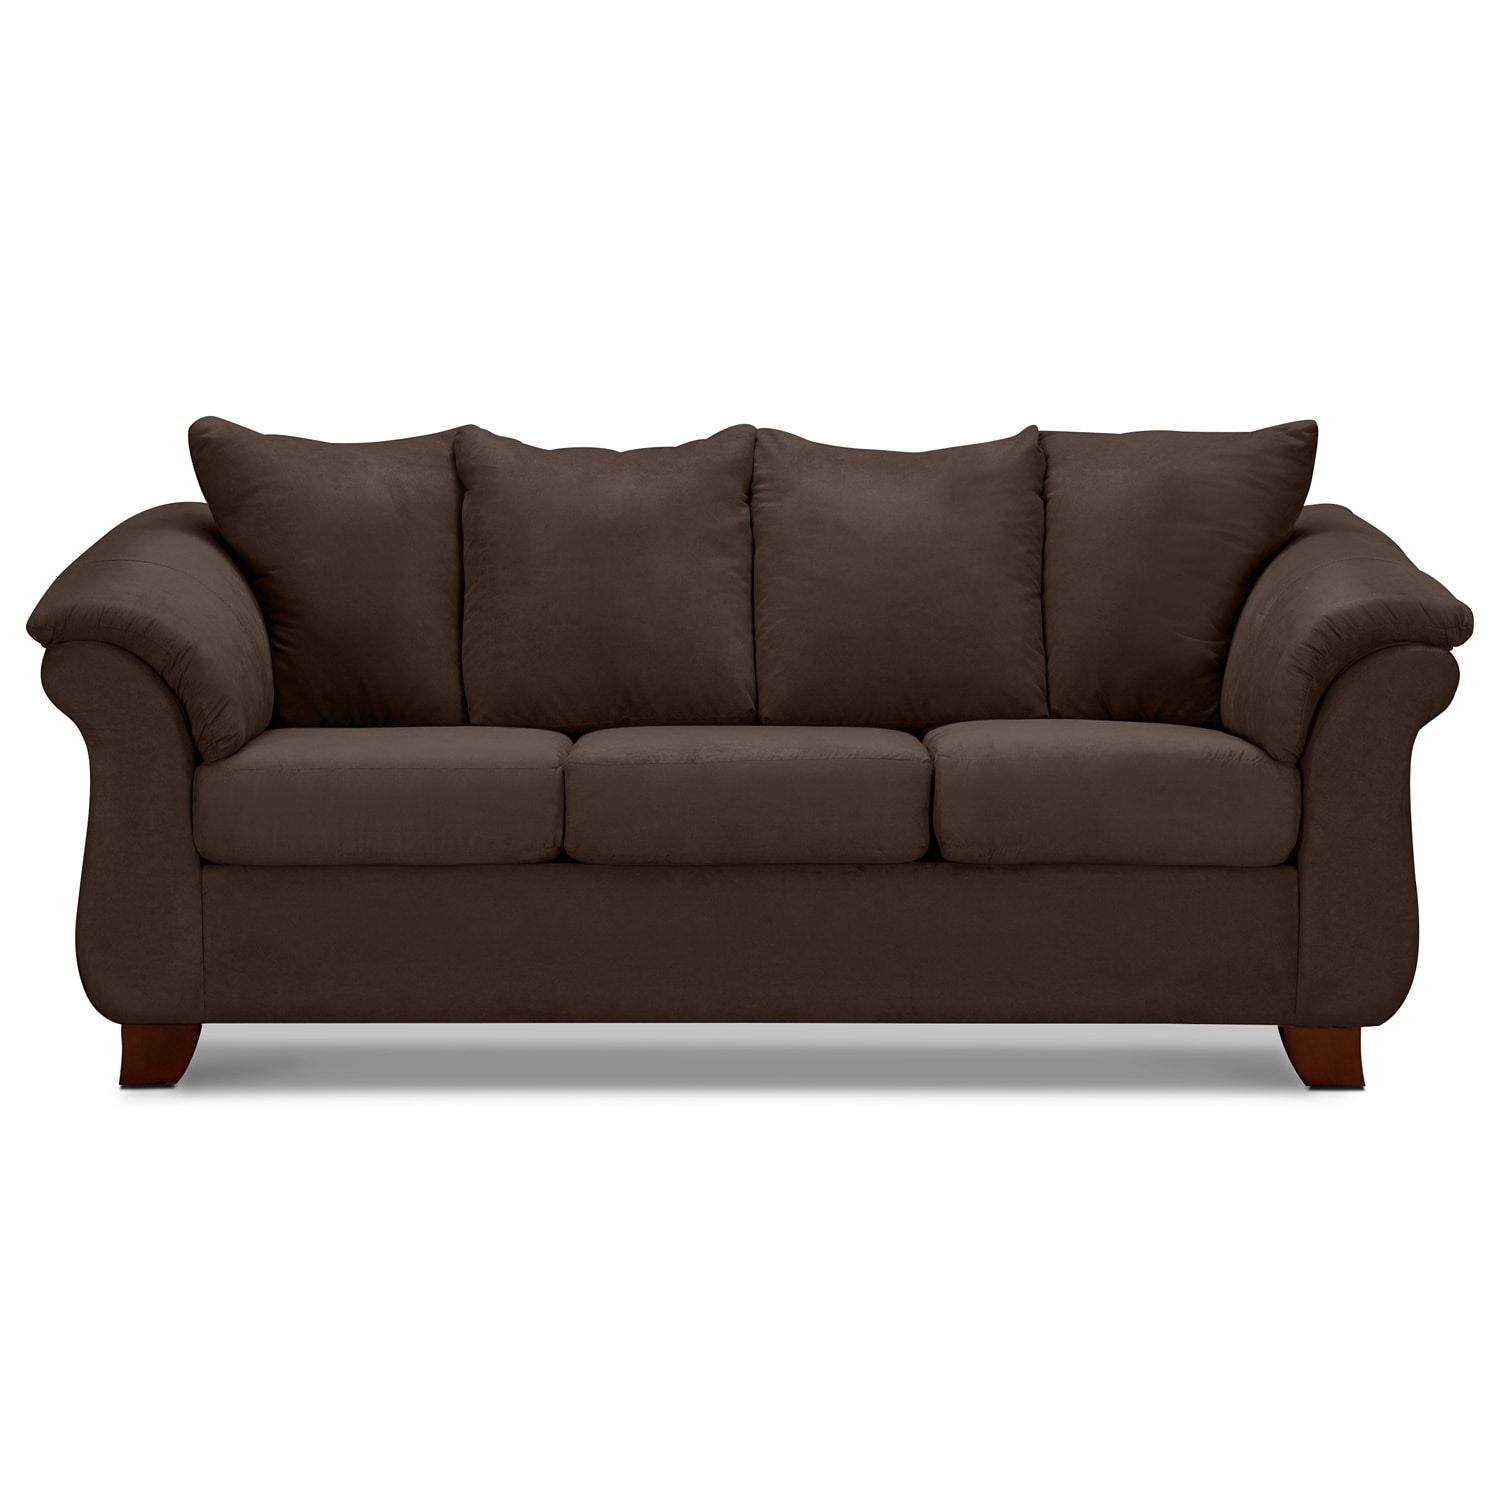 Adrian chocolate sofa value city furniture for Com furniture